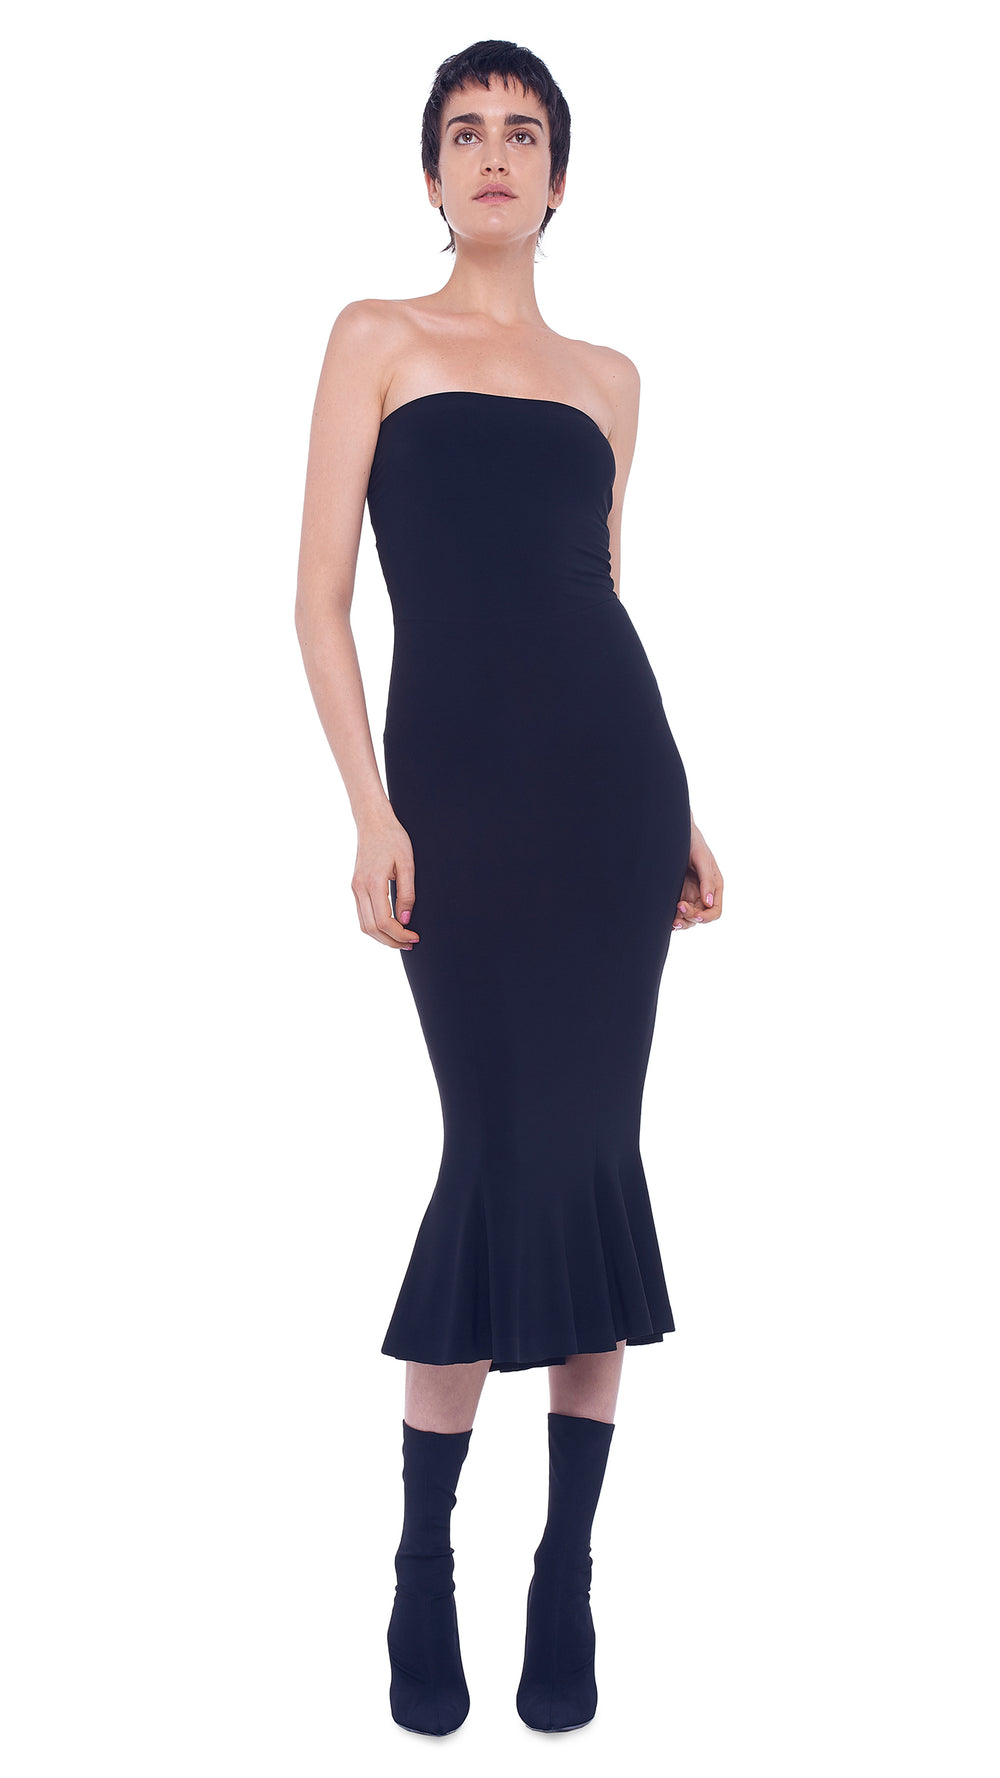 STRAPLESS FISHTAIL DRESS TO MIDCALF - 1